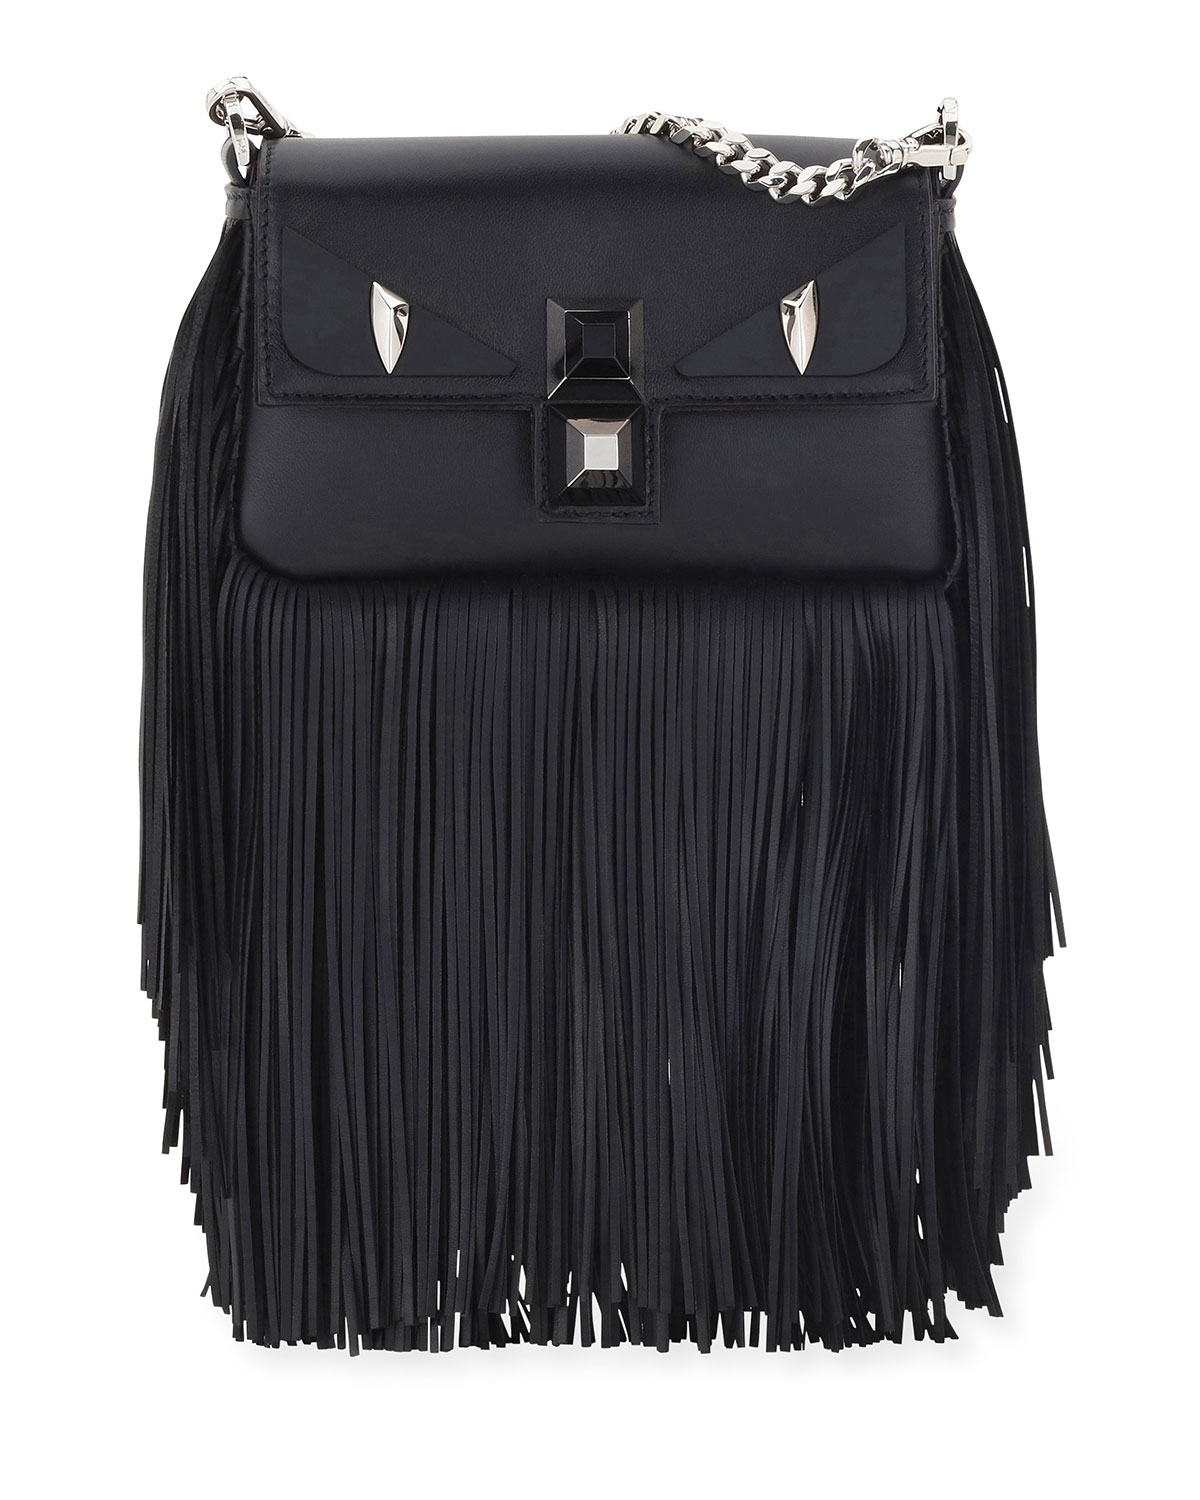 c25c4e1905 Fendi Baguette Monster Micro Fringe Shoulder Bag